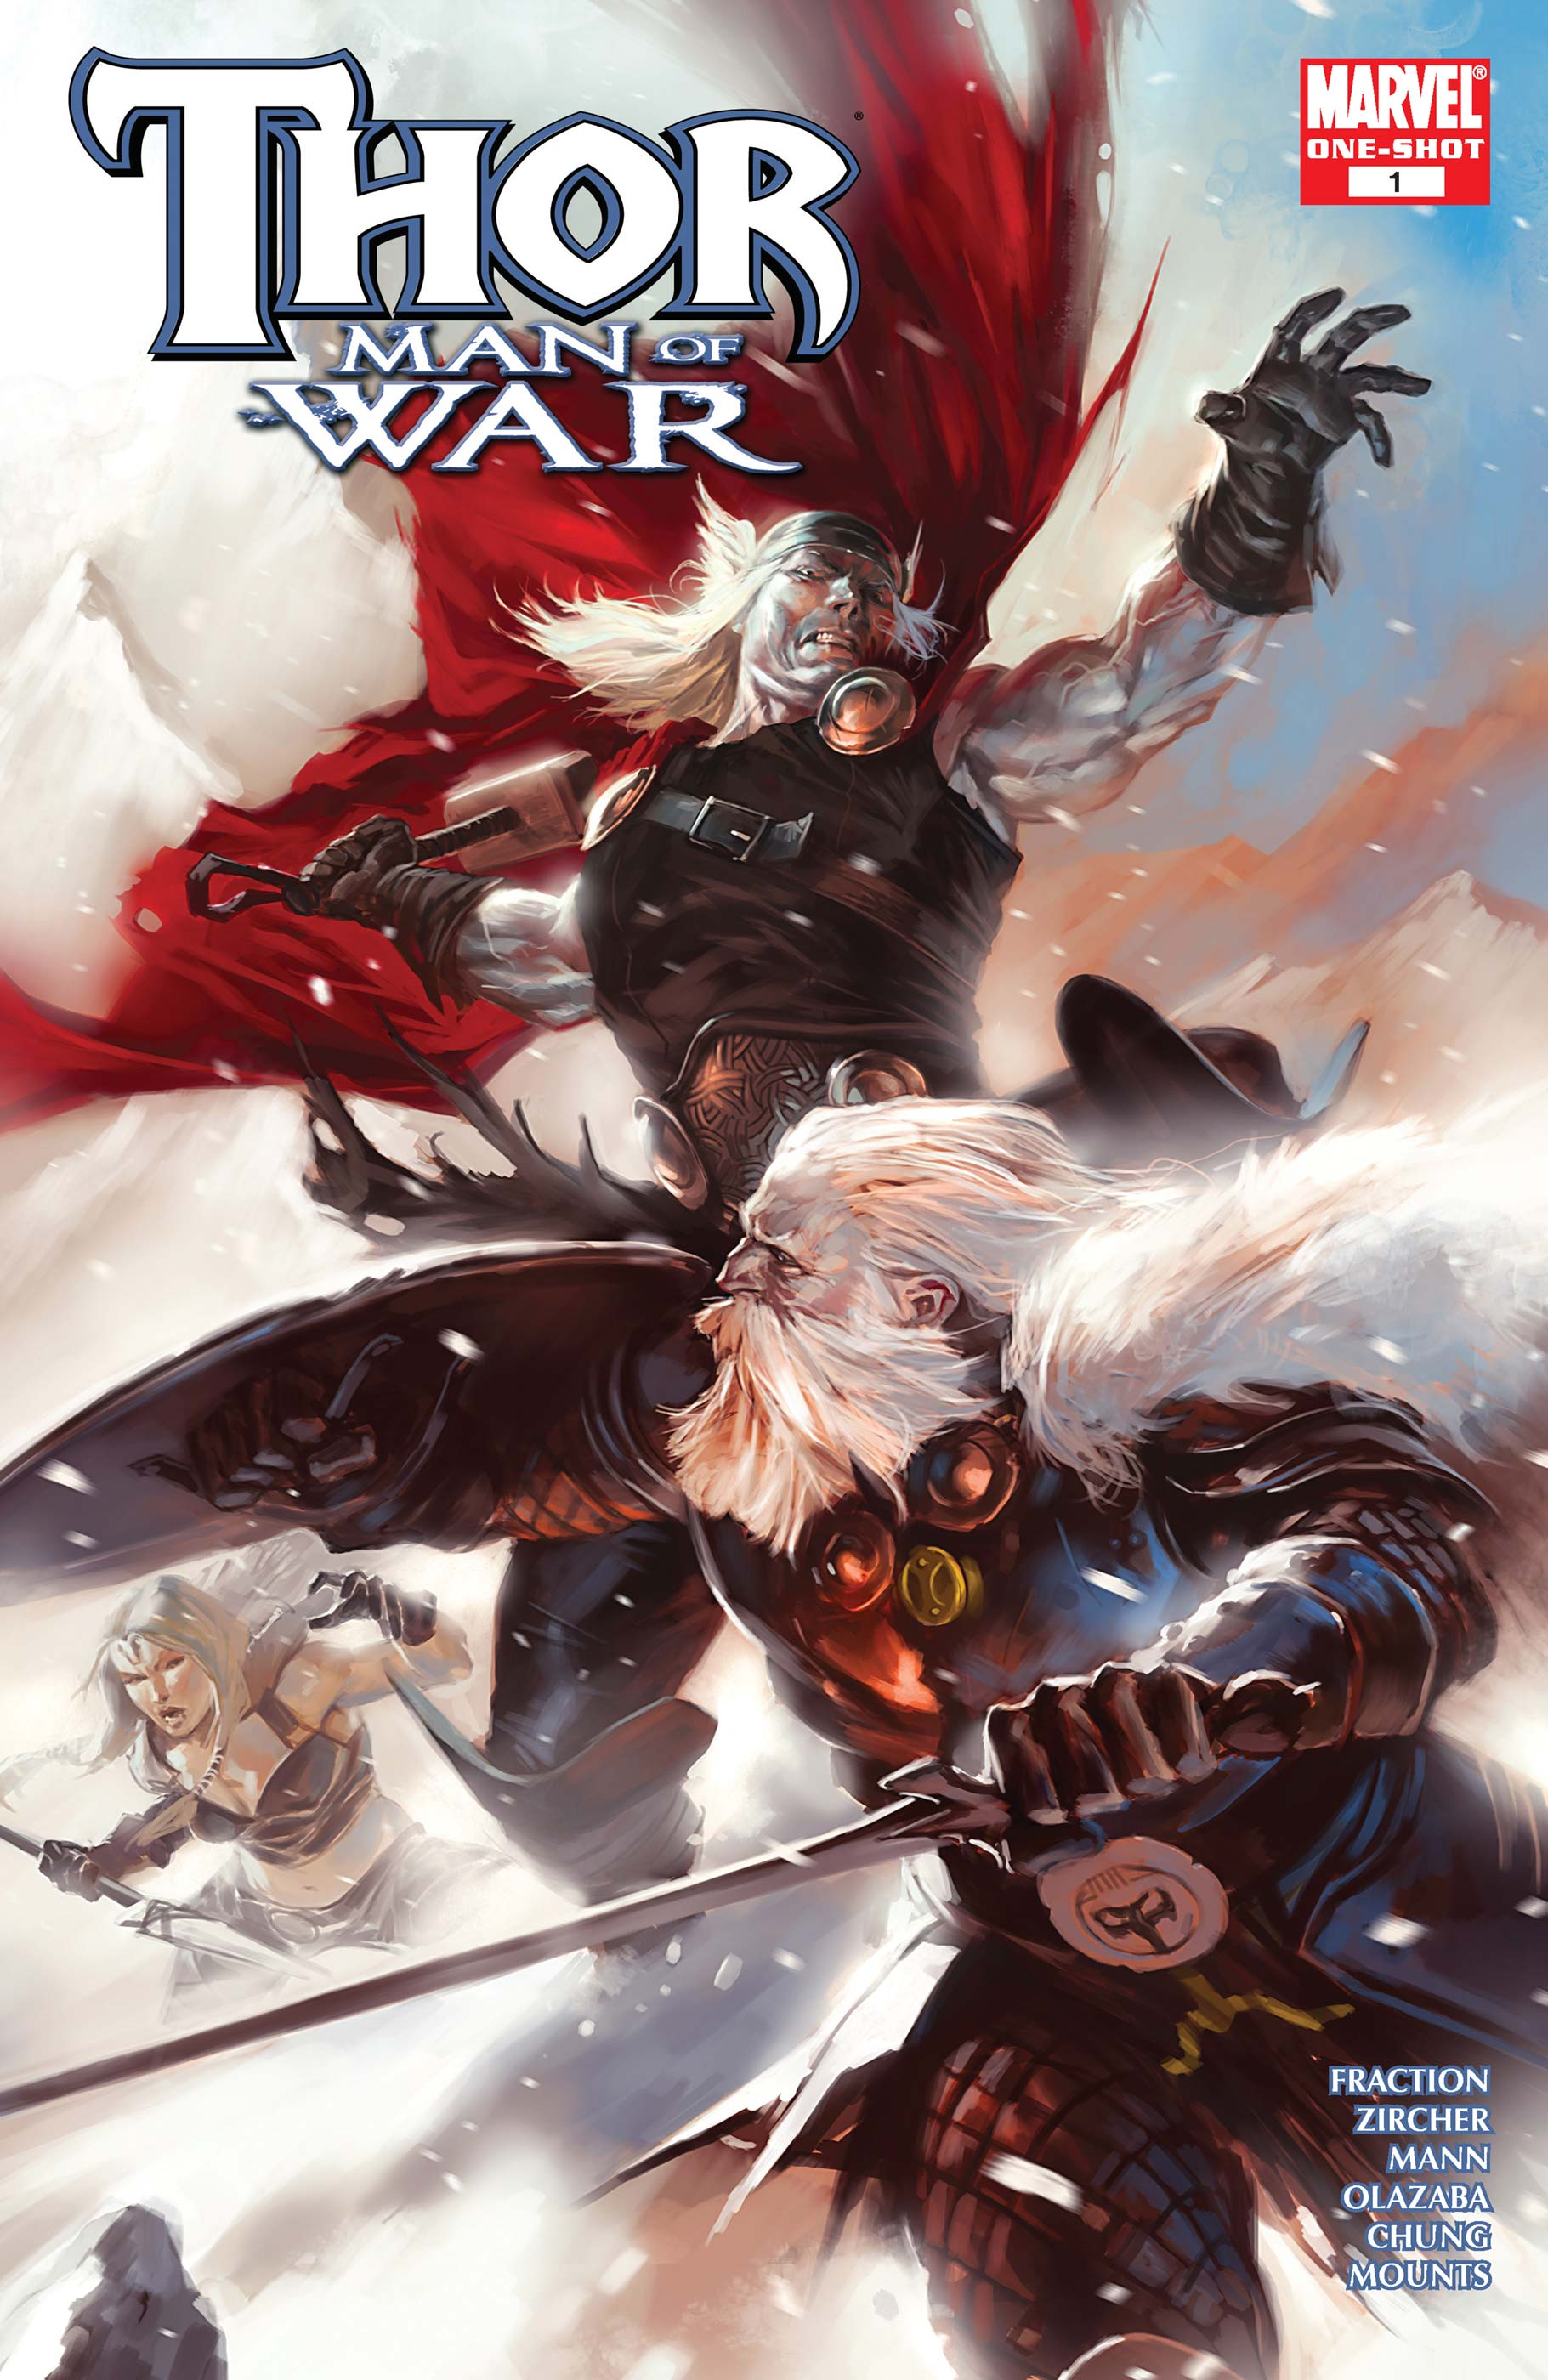 Thor: Man of War (2008) #1